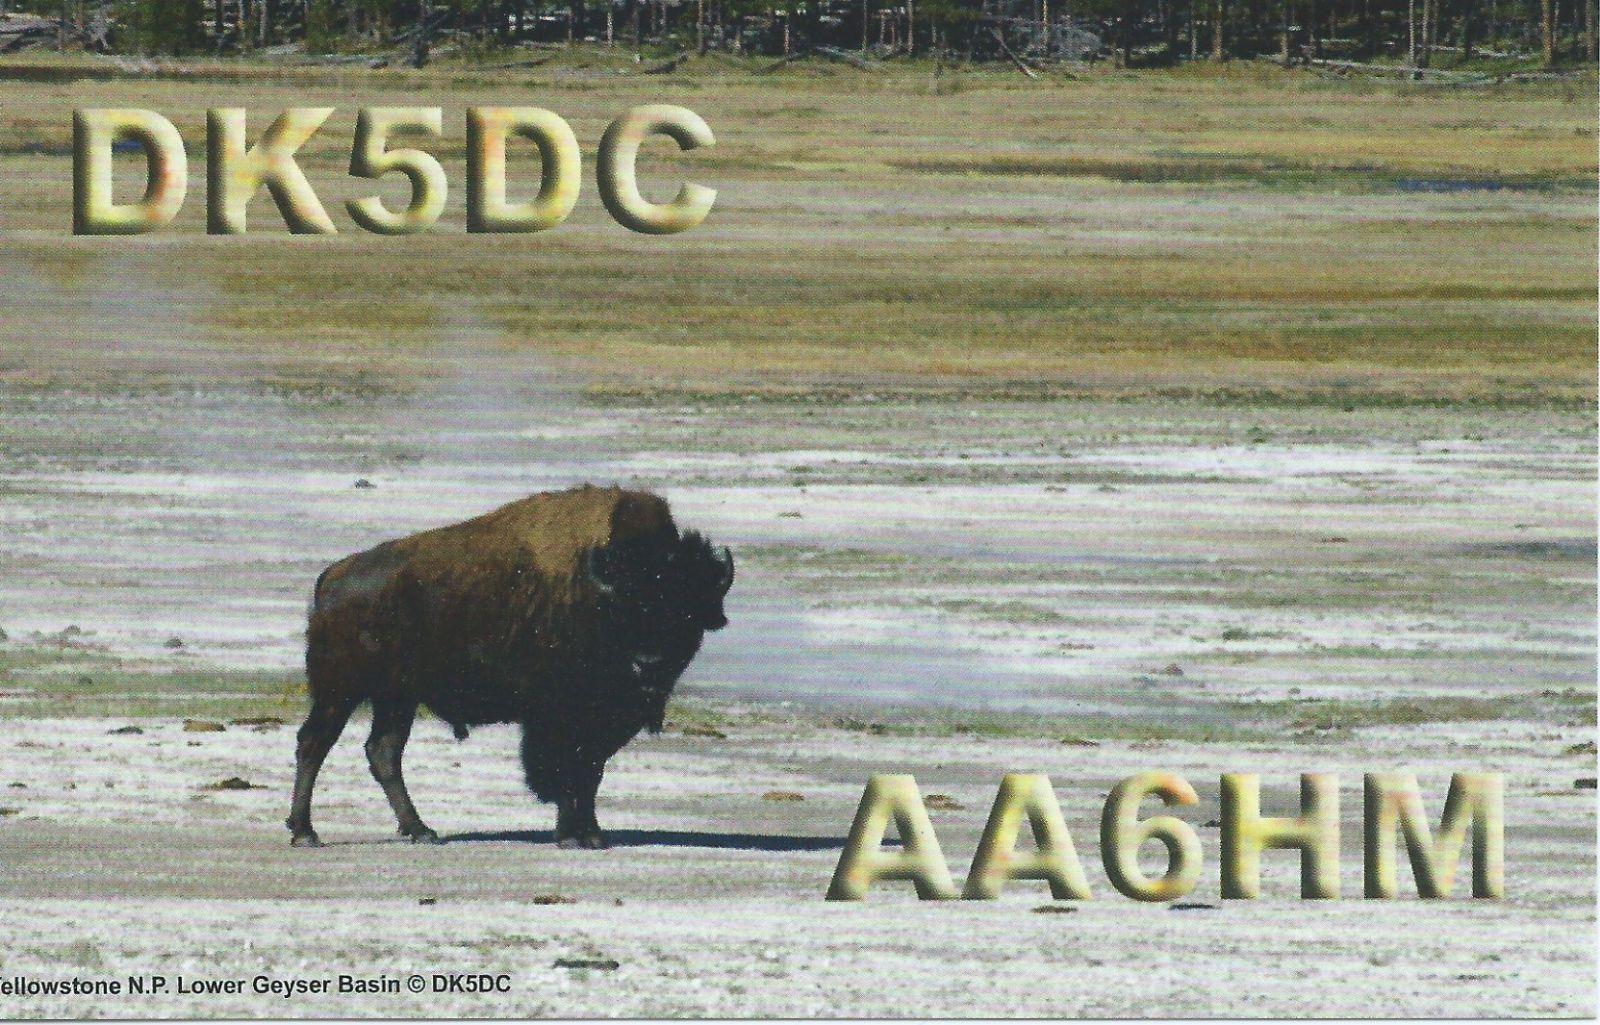 My actual qsl